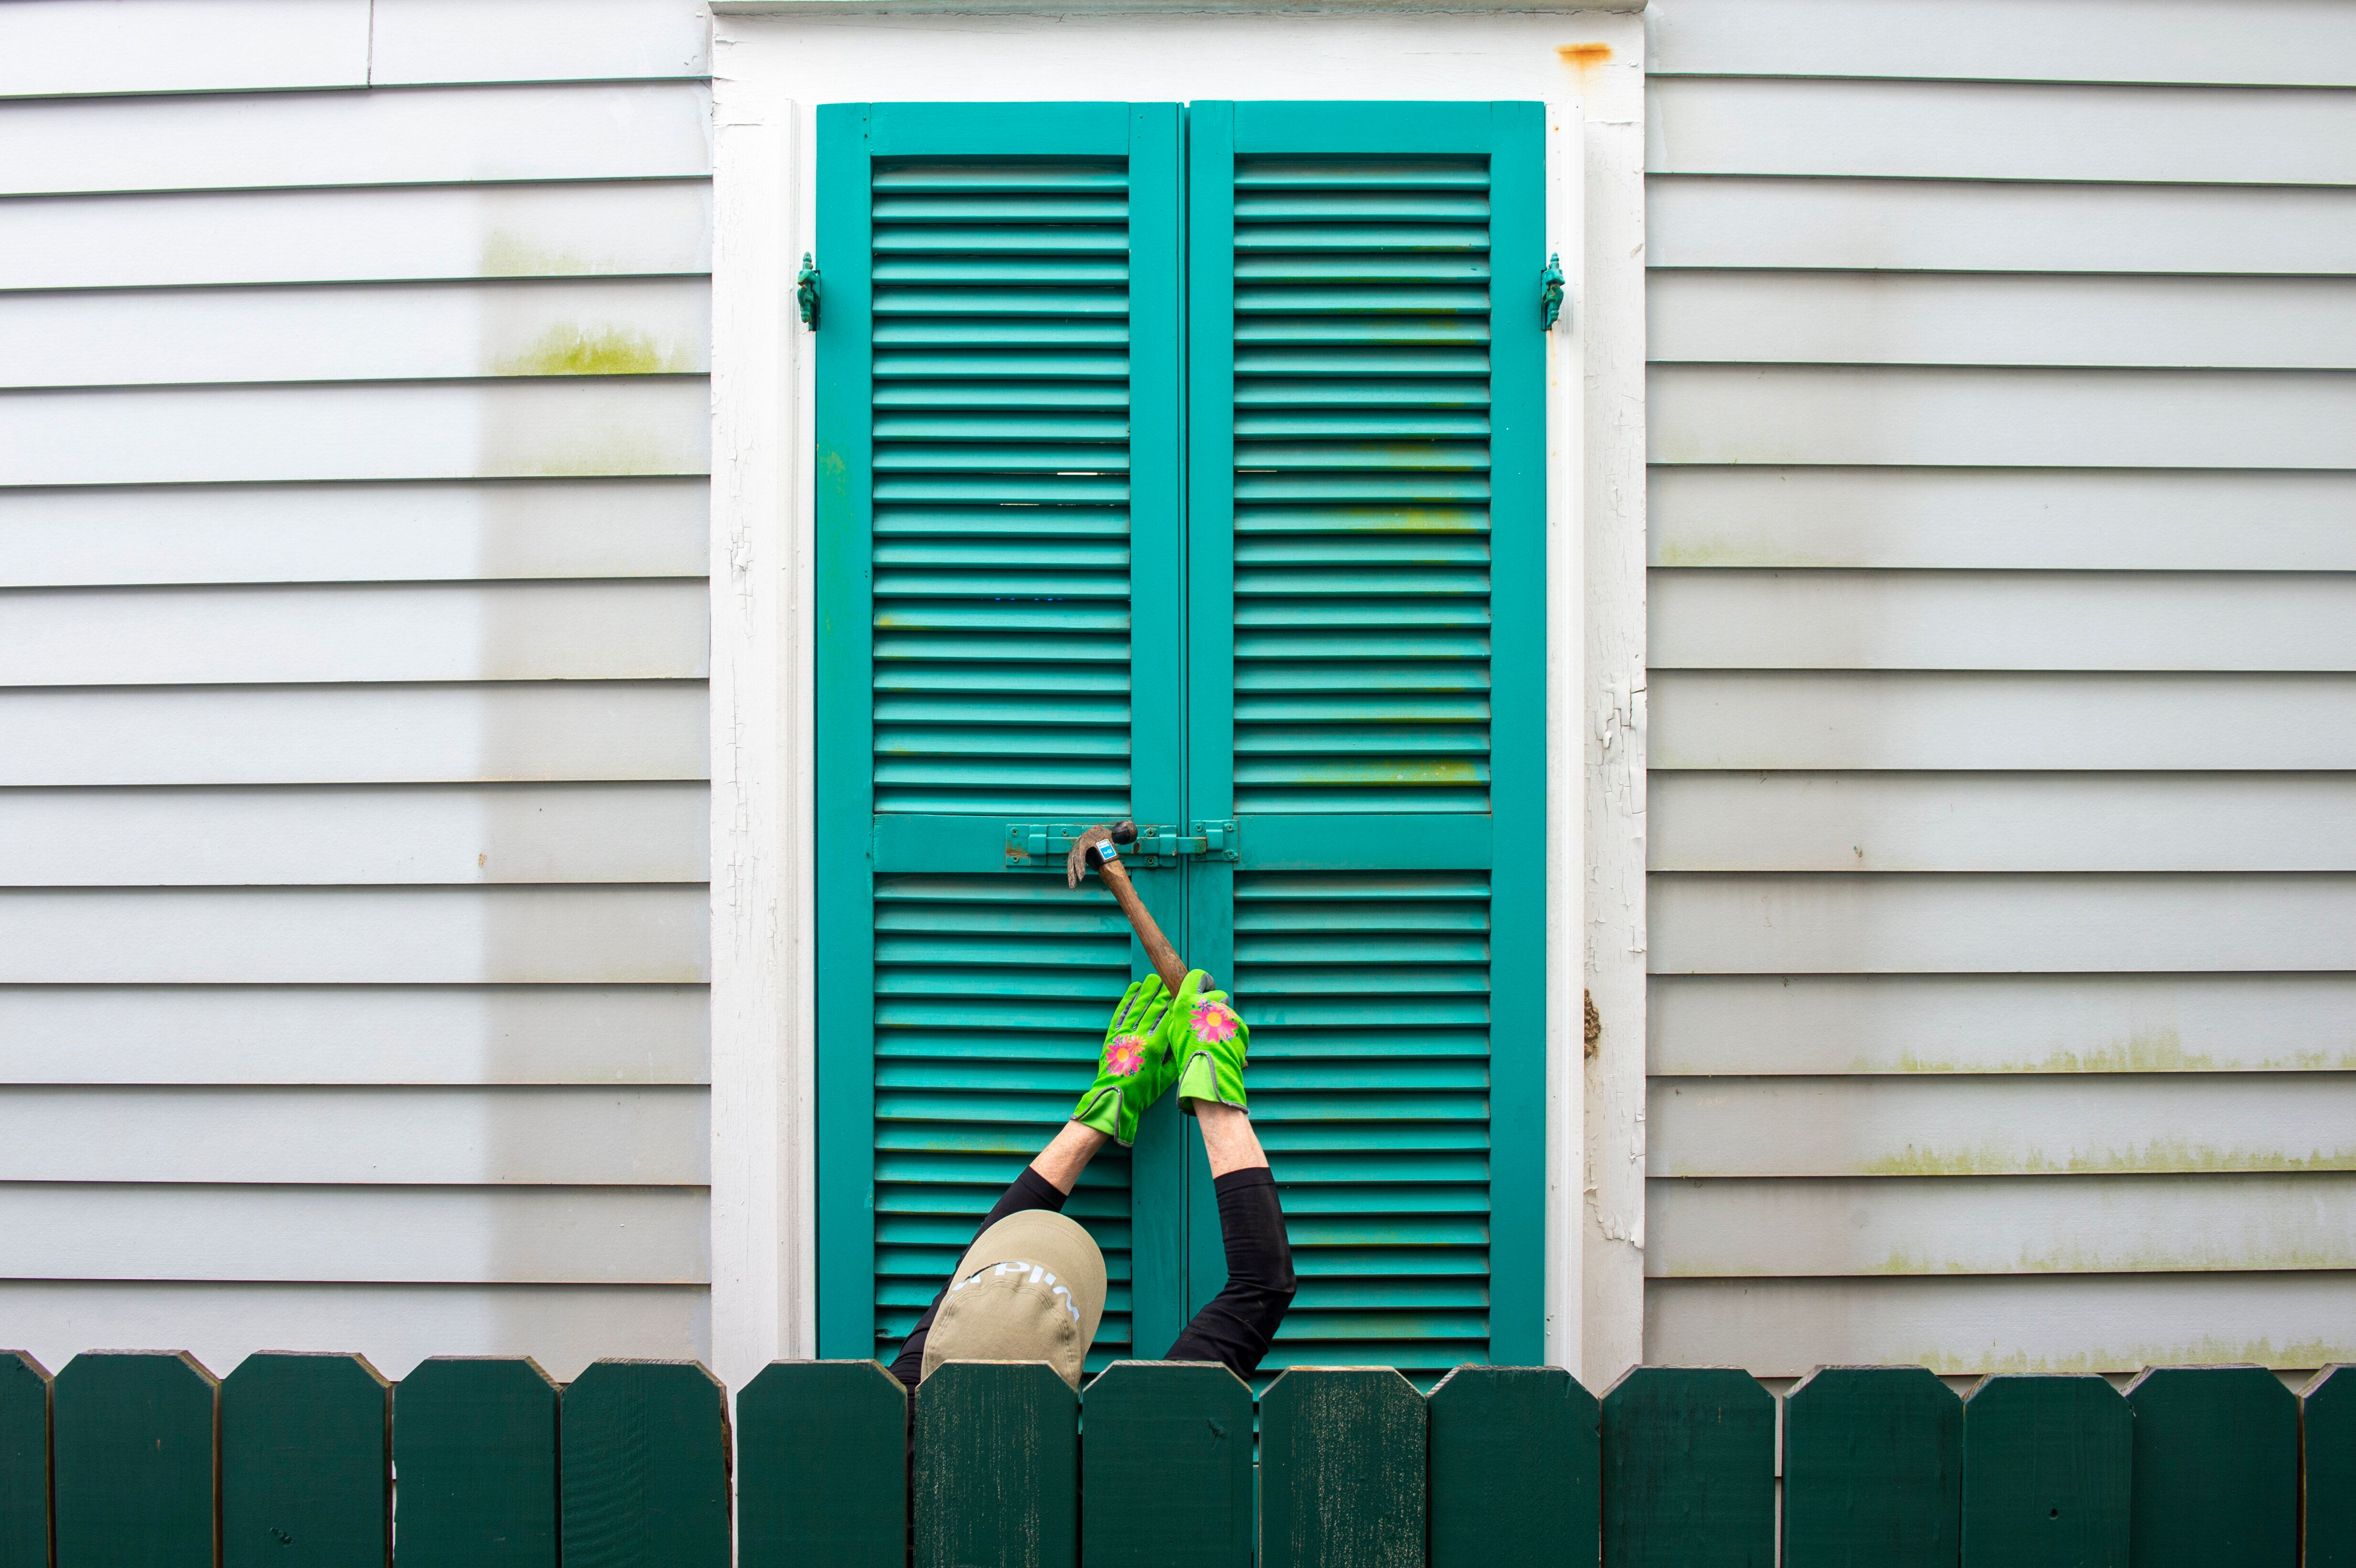 Storm shutters are hammered closed on a 100-year-old house, Friday, August 27, 2021, in New Orleans, as residents prepare for